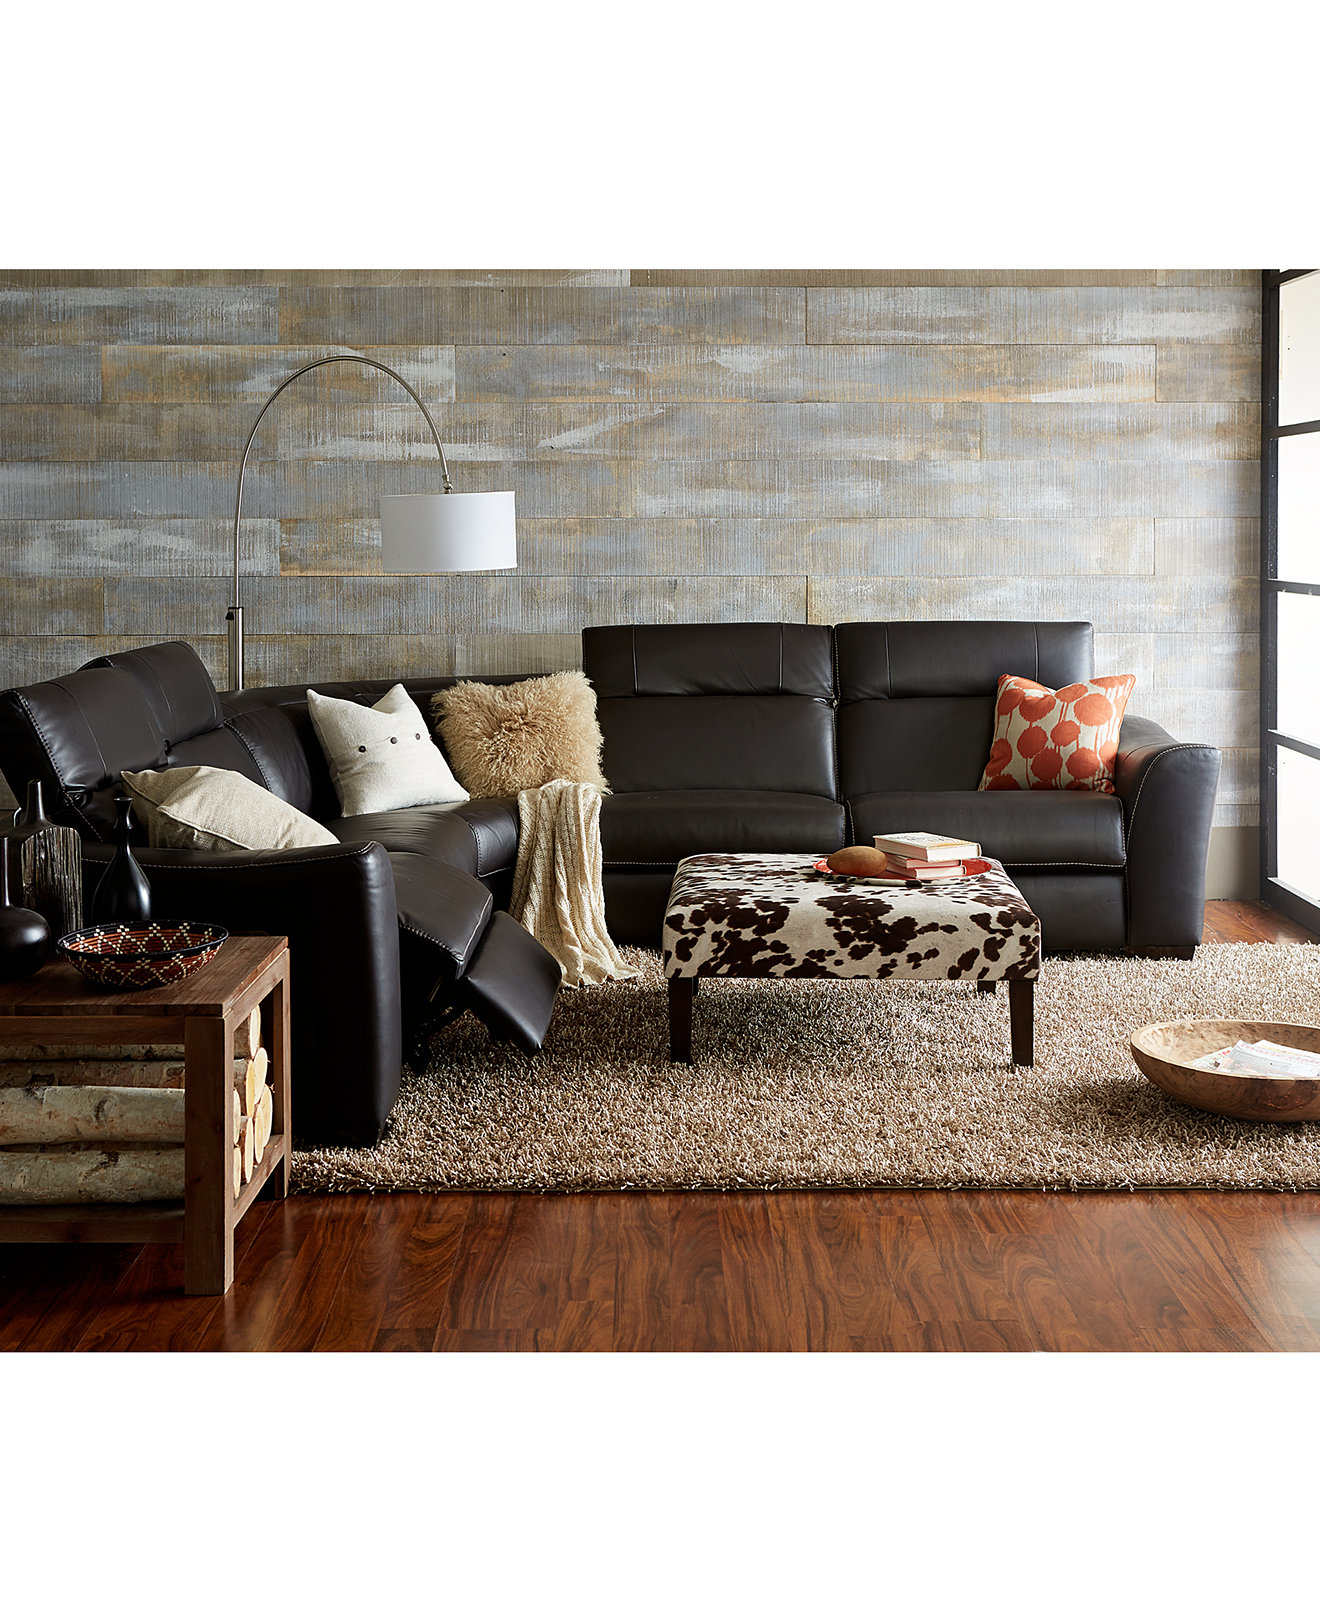 Leather Sectional Living Room Alessandro Leather Power Reclining With Articulating Headrest